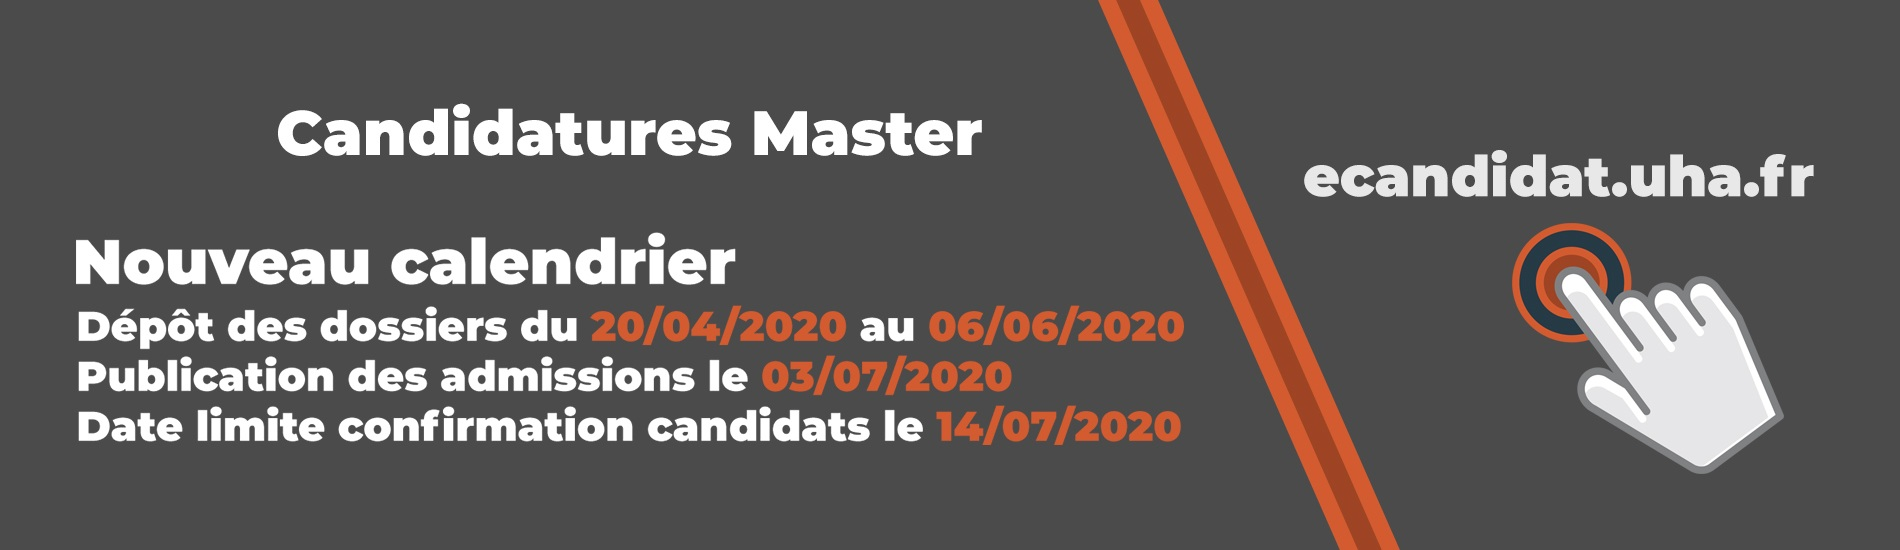 Candidatures Master 2020